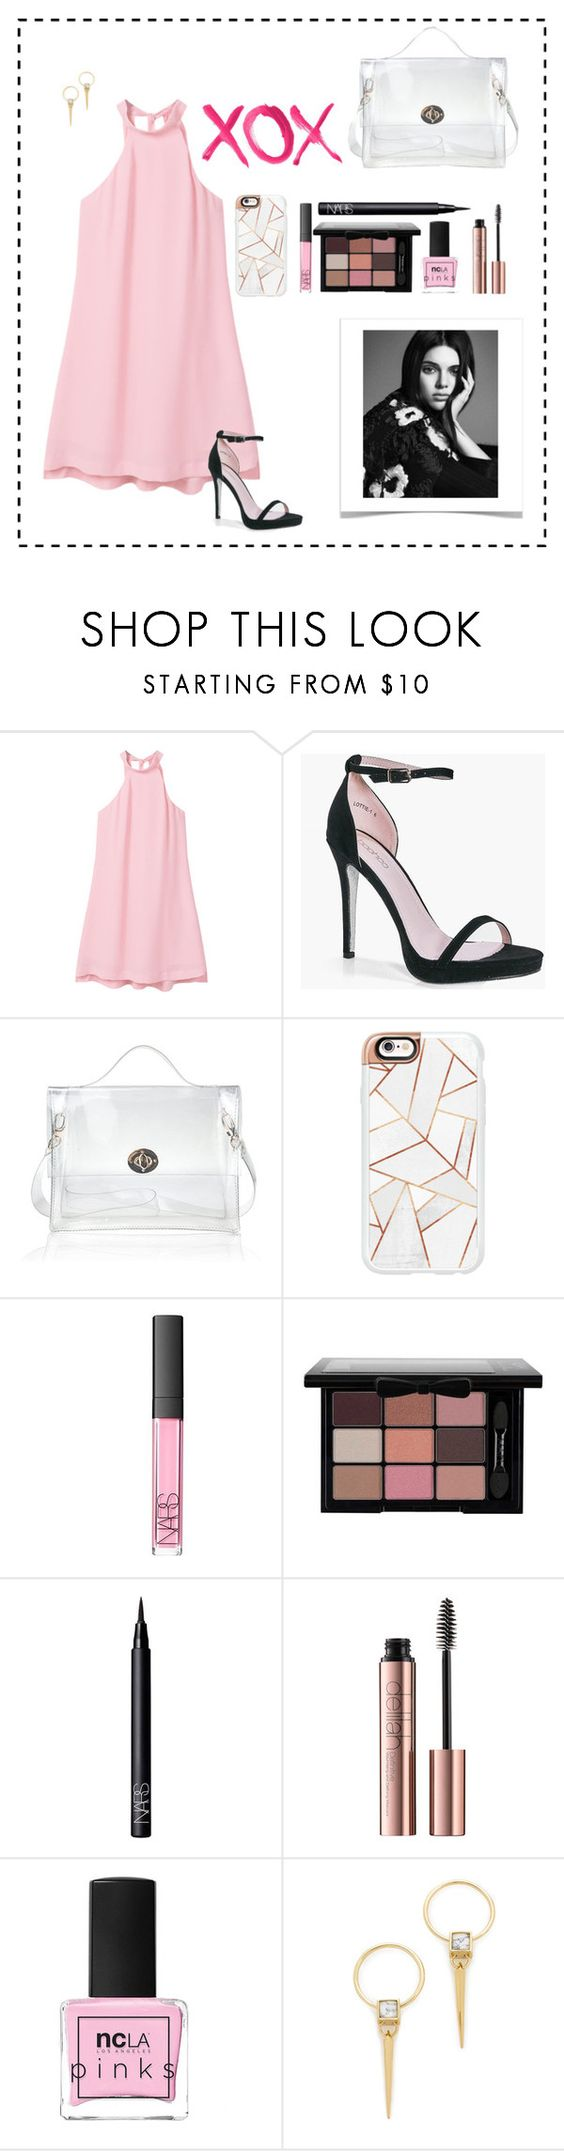 """""""GM #31"""" by geovanacelia ❤ liked on Polyvore featuring MANGO, Boohoo, Casetify, NARS Cosmetics, ncLA, Alexis Bittar and GALA"""